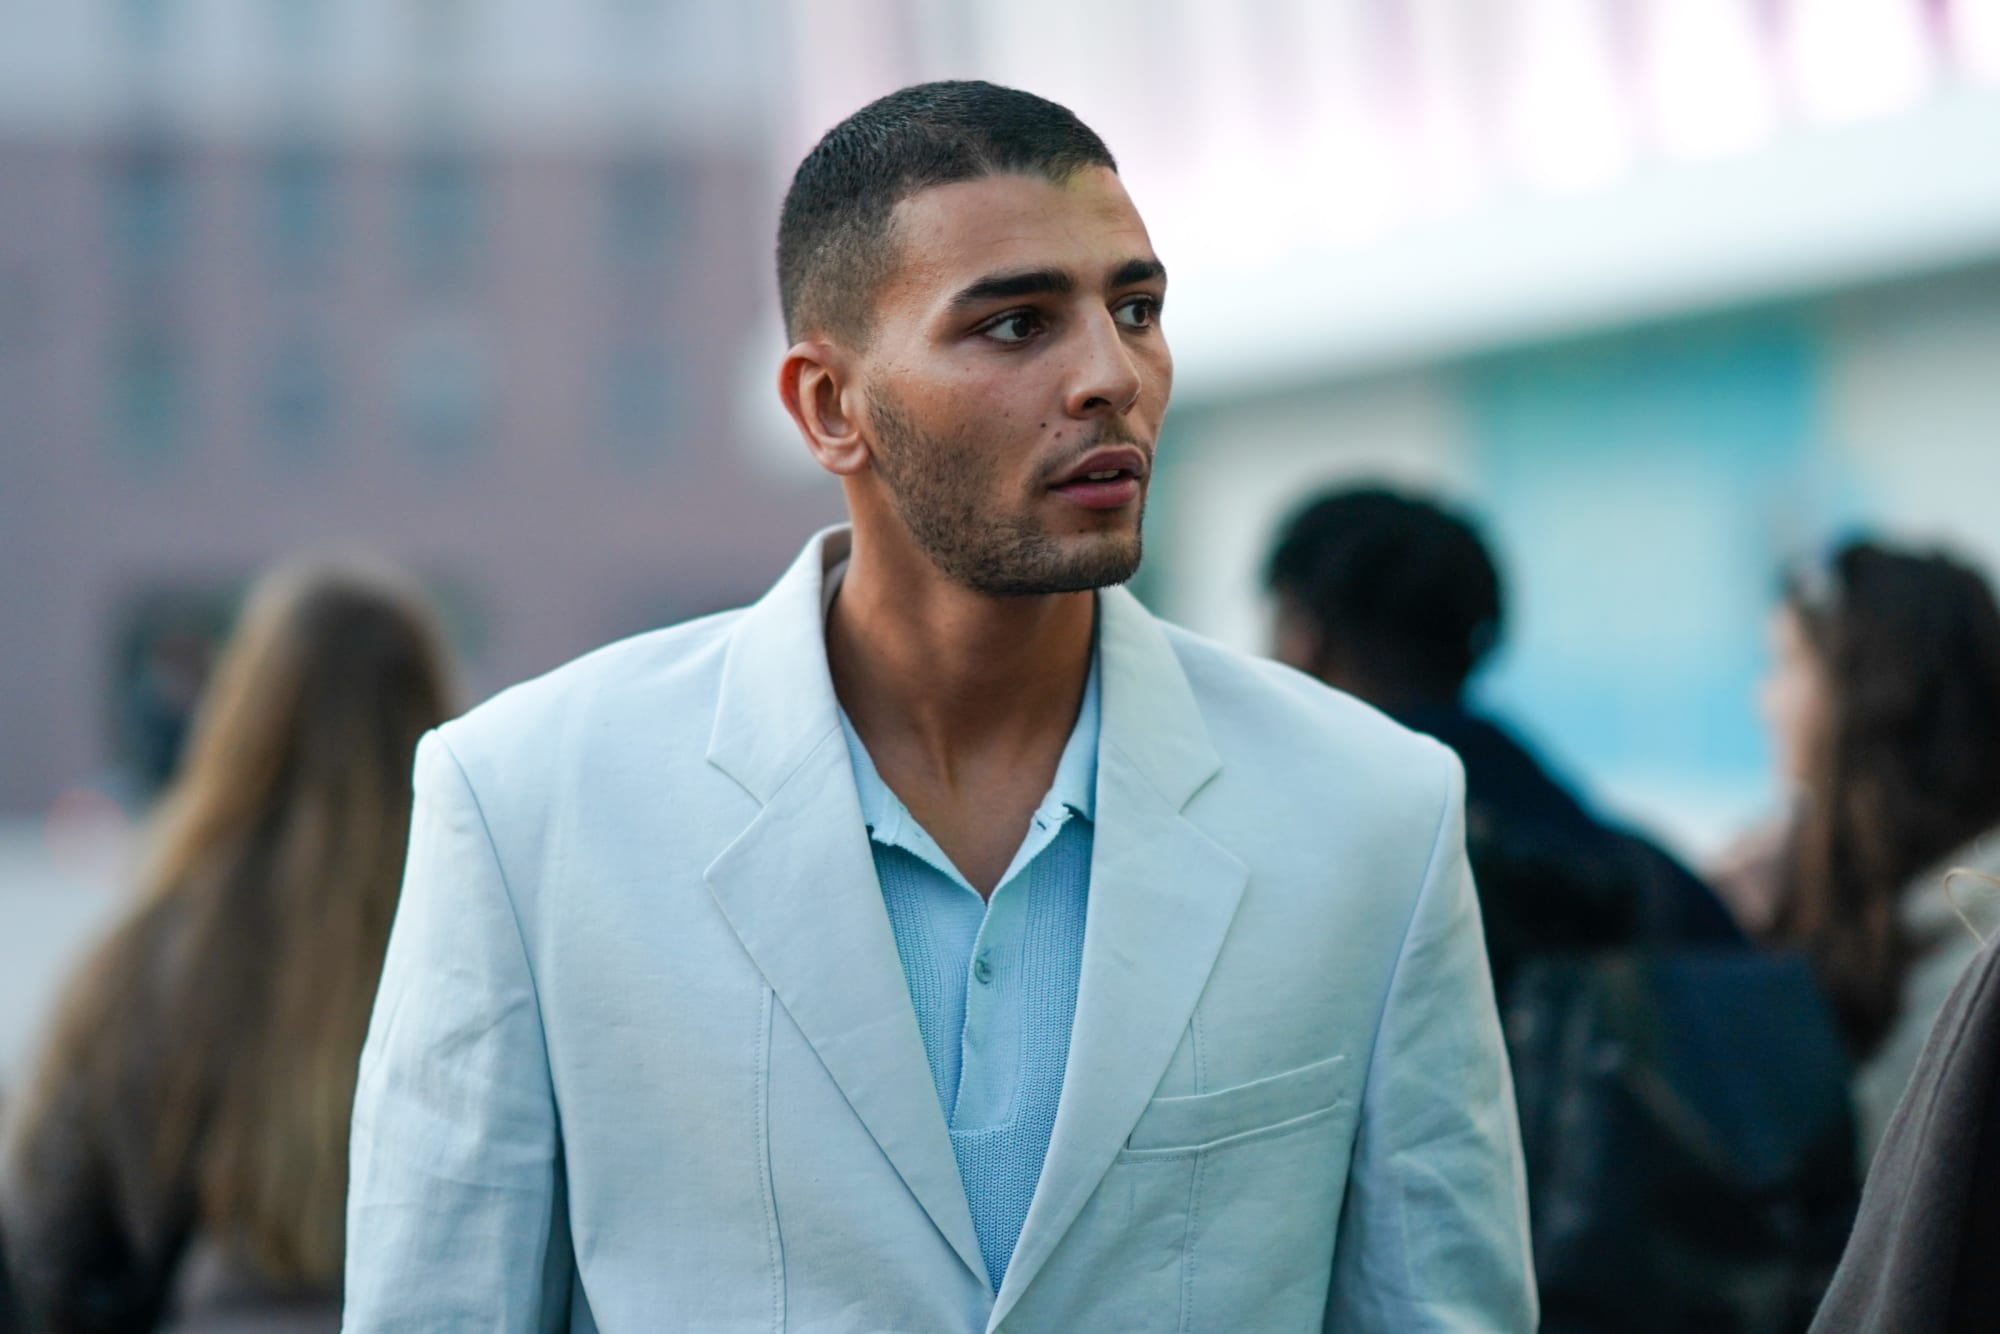 Younes Bendjima posts alleged DMs from Scott Disick about Kourtney